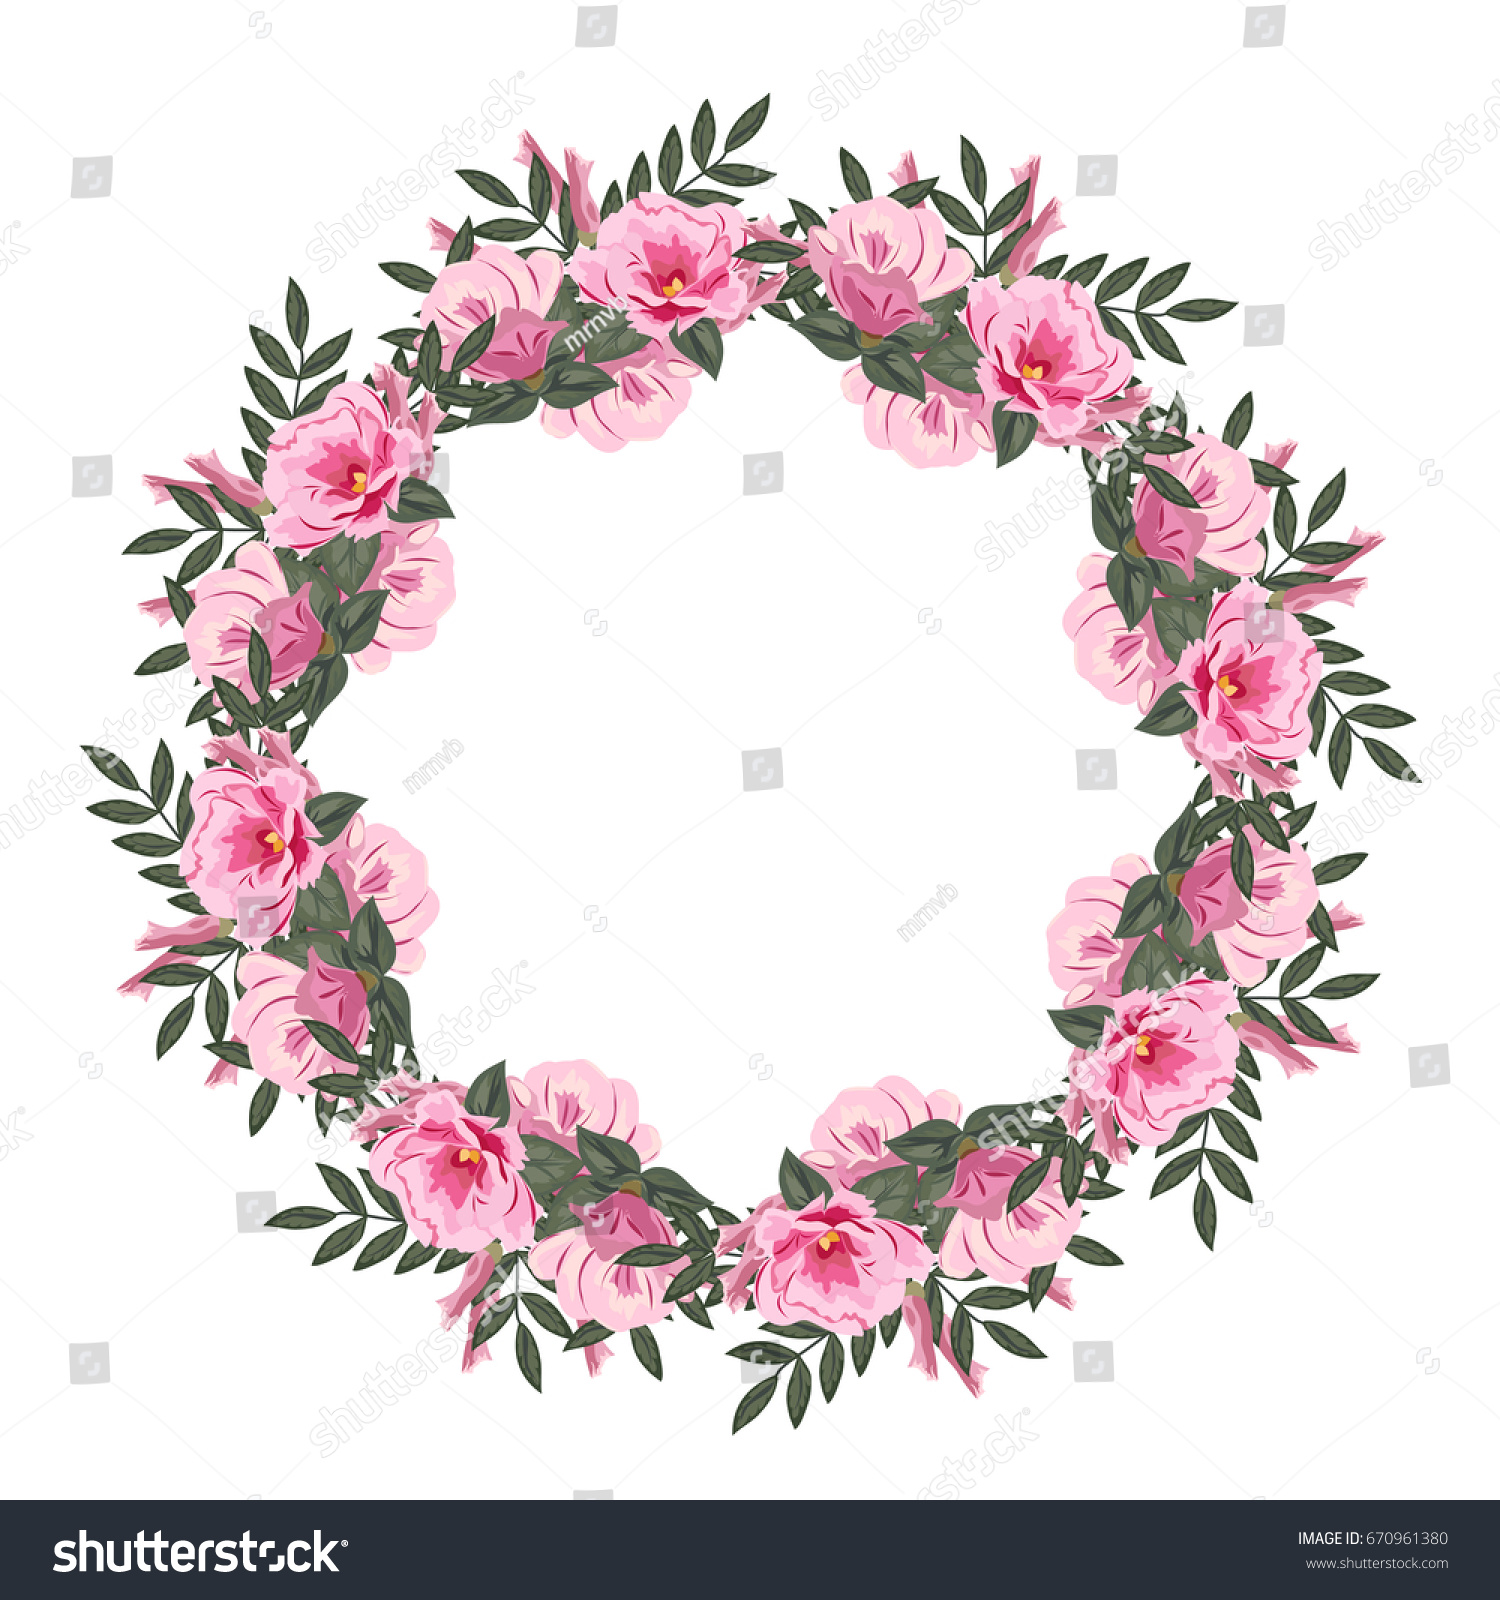 Beautiful Floral Wreath Lovely Pink Flowers Stock Illustration